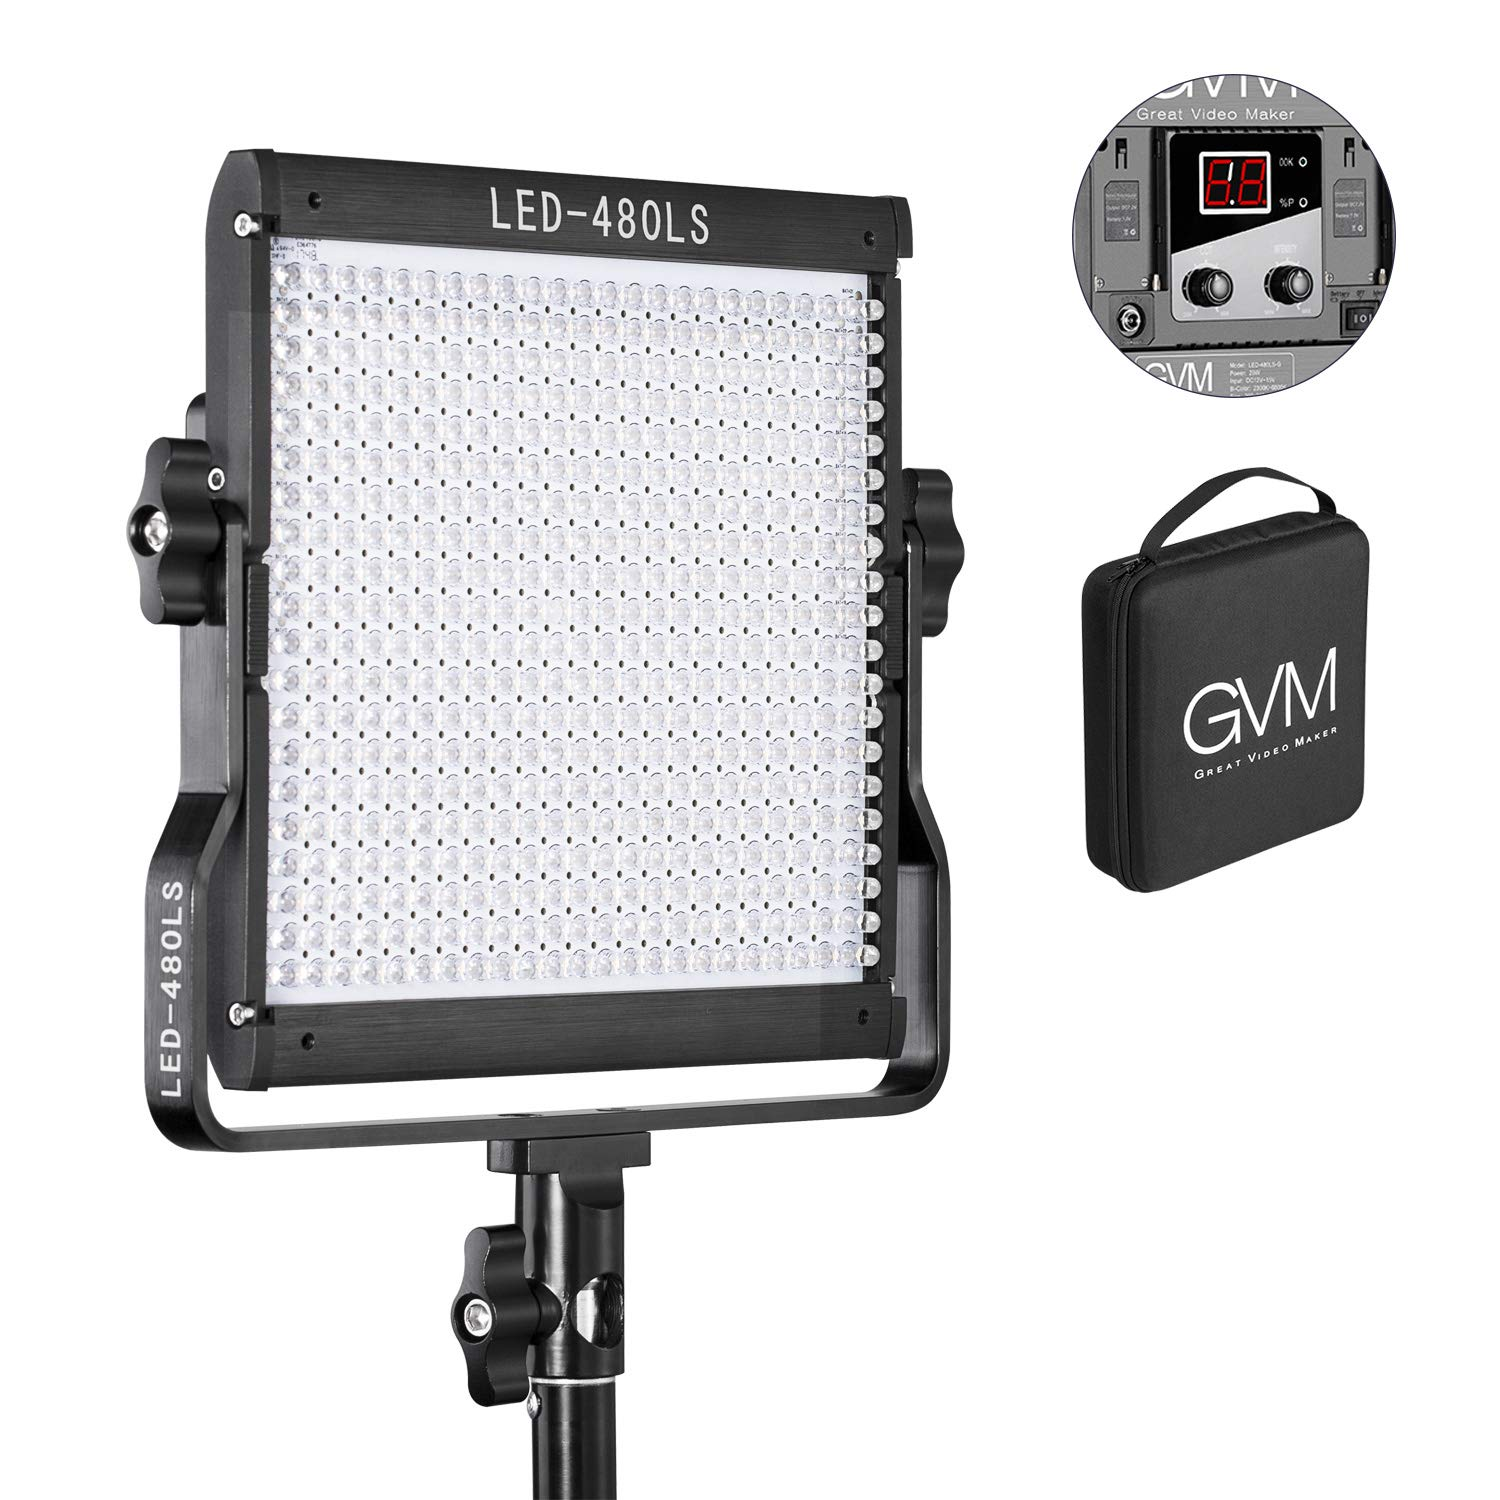 GVM 480 LED Video Panel Light Dimmable Bi-Color Camera Light in Metal Housing with Digital Readout for Studio, YouTube Outdoor Video Photography Lighting Kit 2300K6800K, CRI97+ Tlci97 +